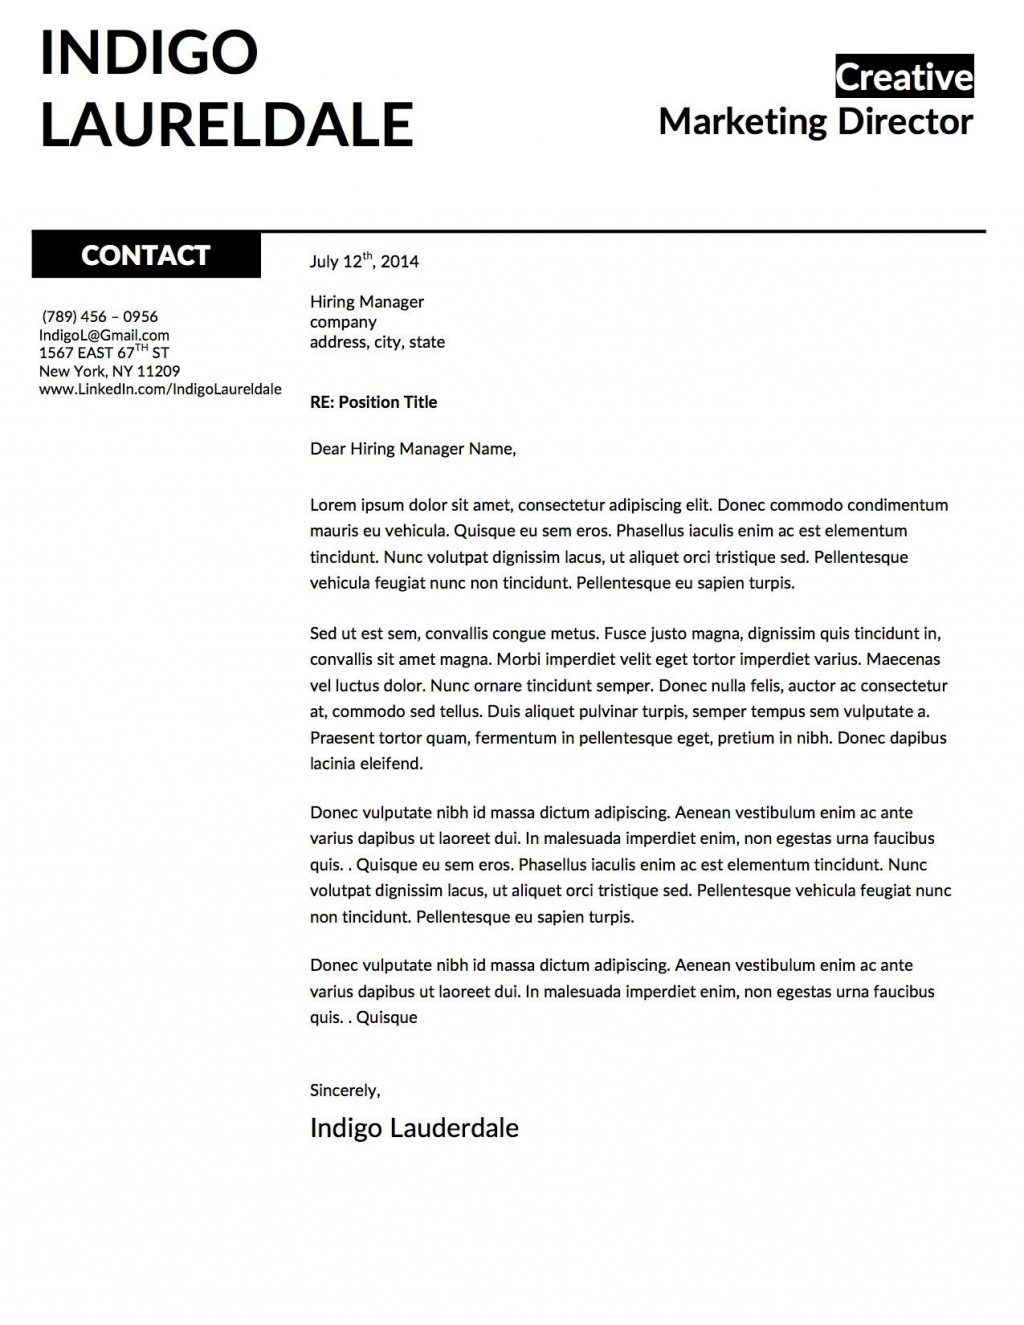 001 Unforgettable Window Resume Cover Letter Template High Resolution  TemplatesLarge